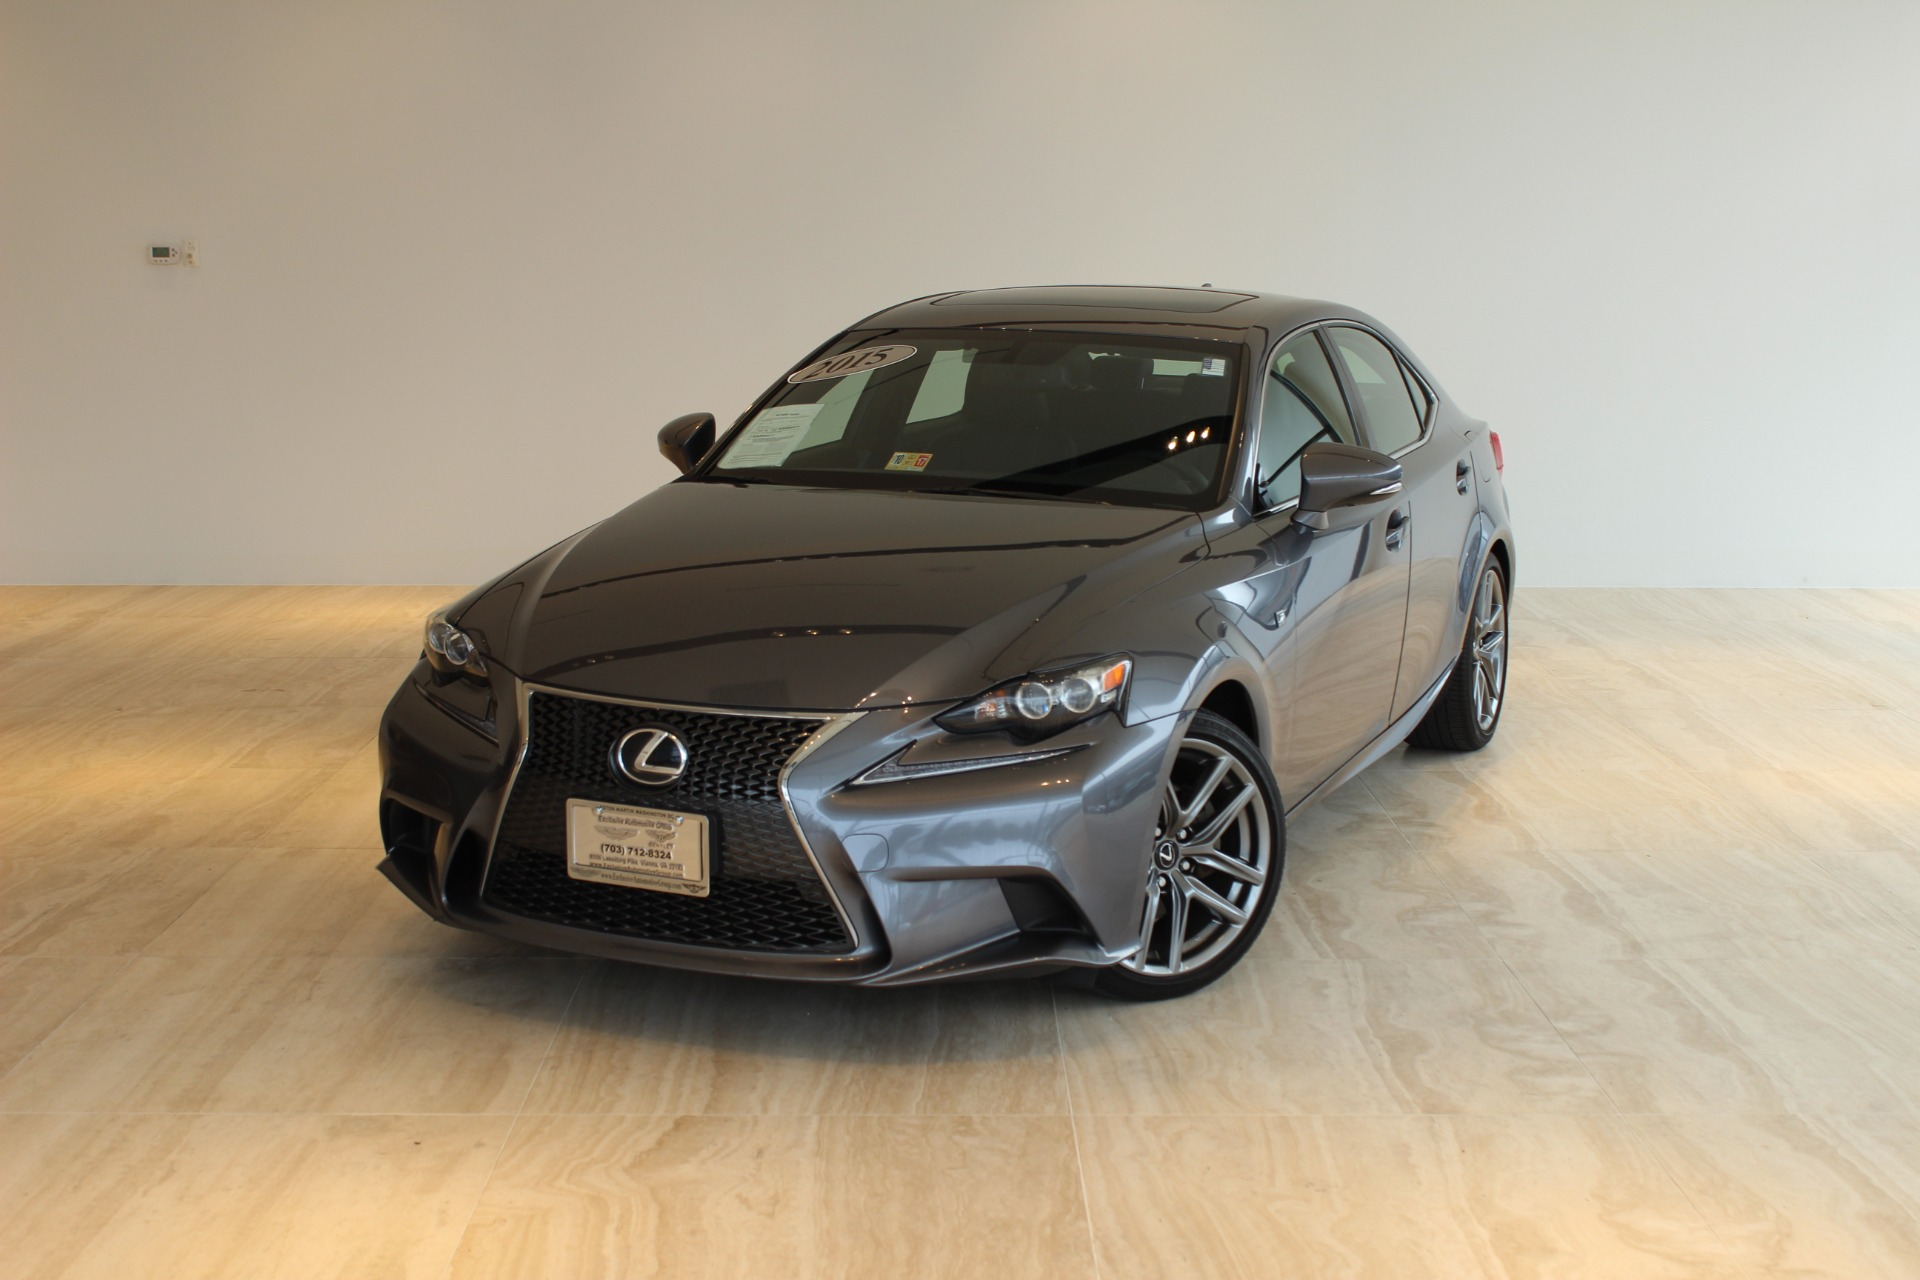 2015 lexus is 250 crafted line stock p018881 for sale